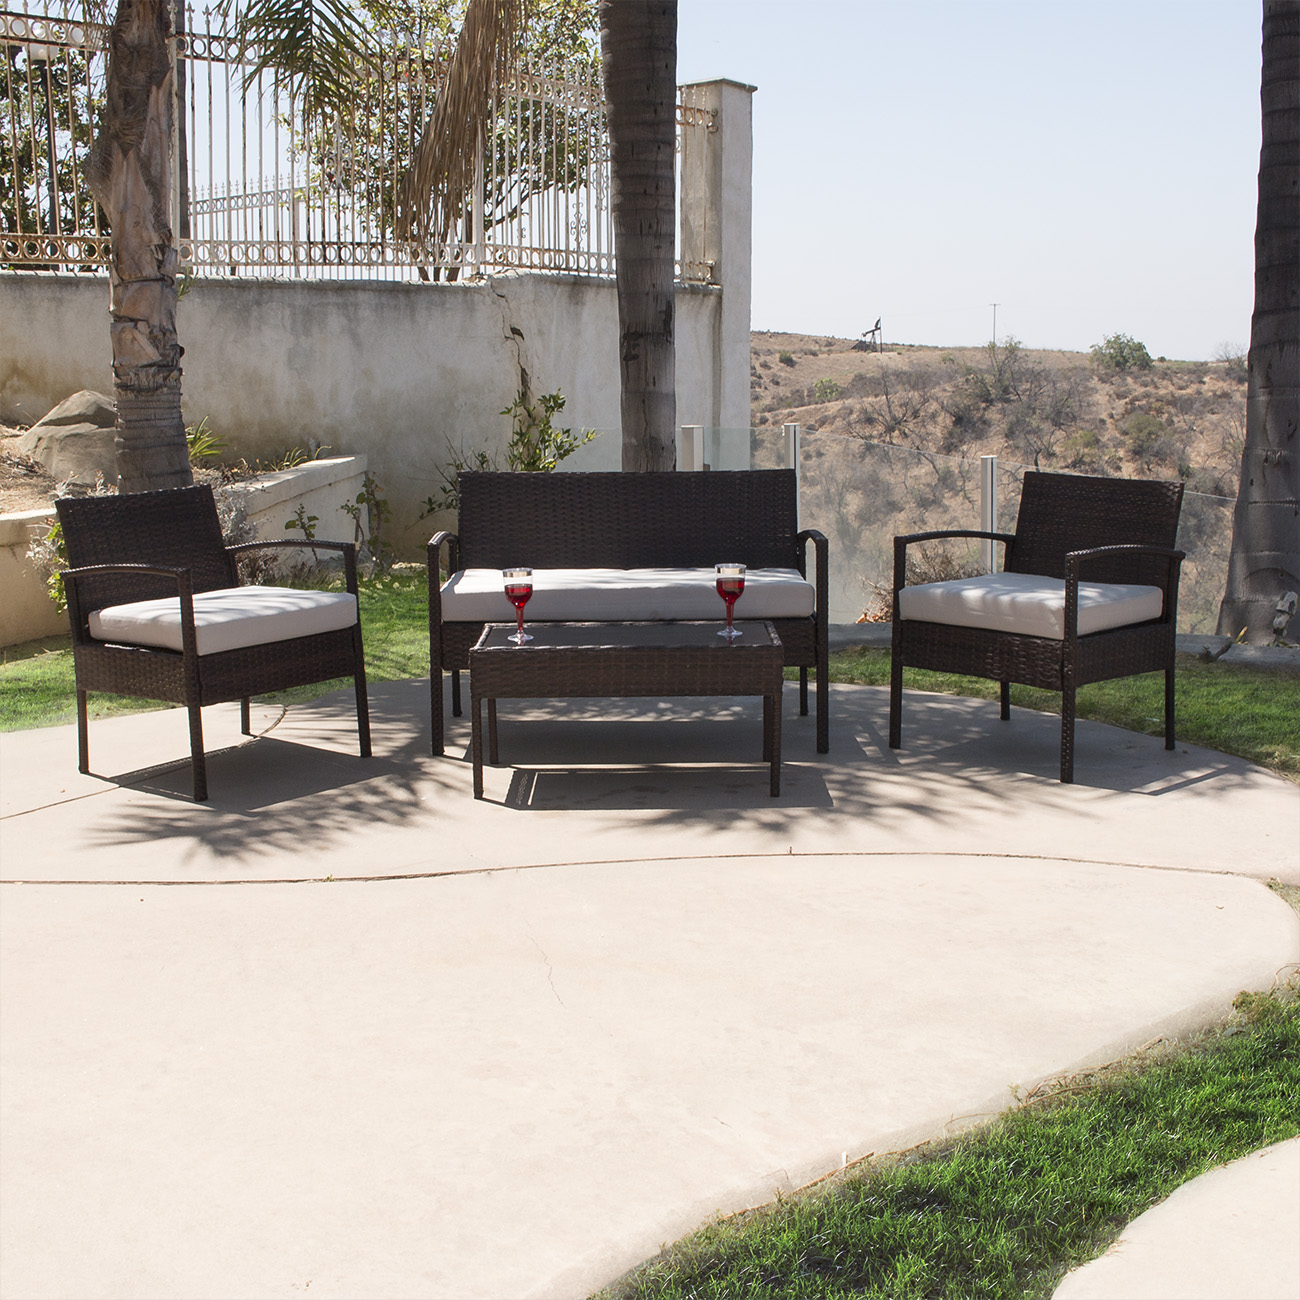 durable 4pc patio furniture set cushioned outdoor wicker rattan garden